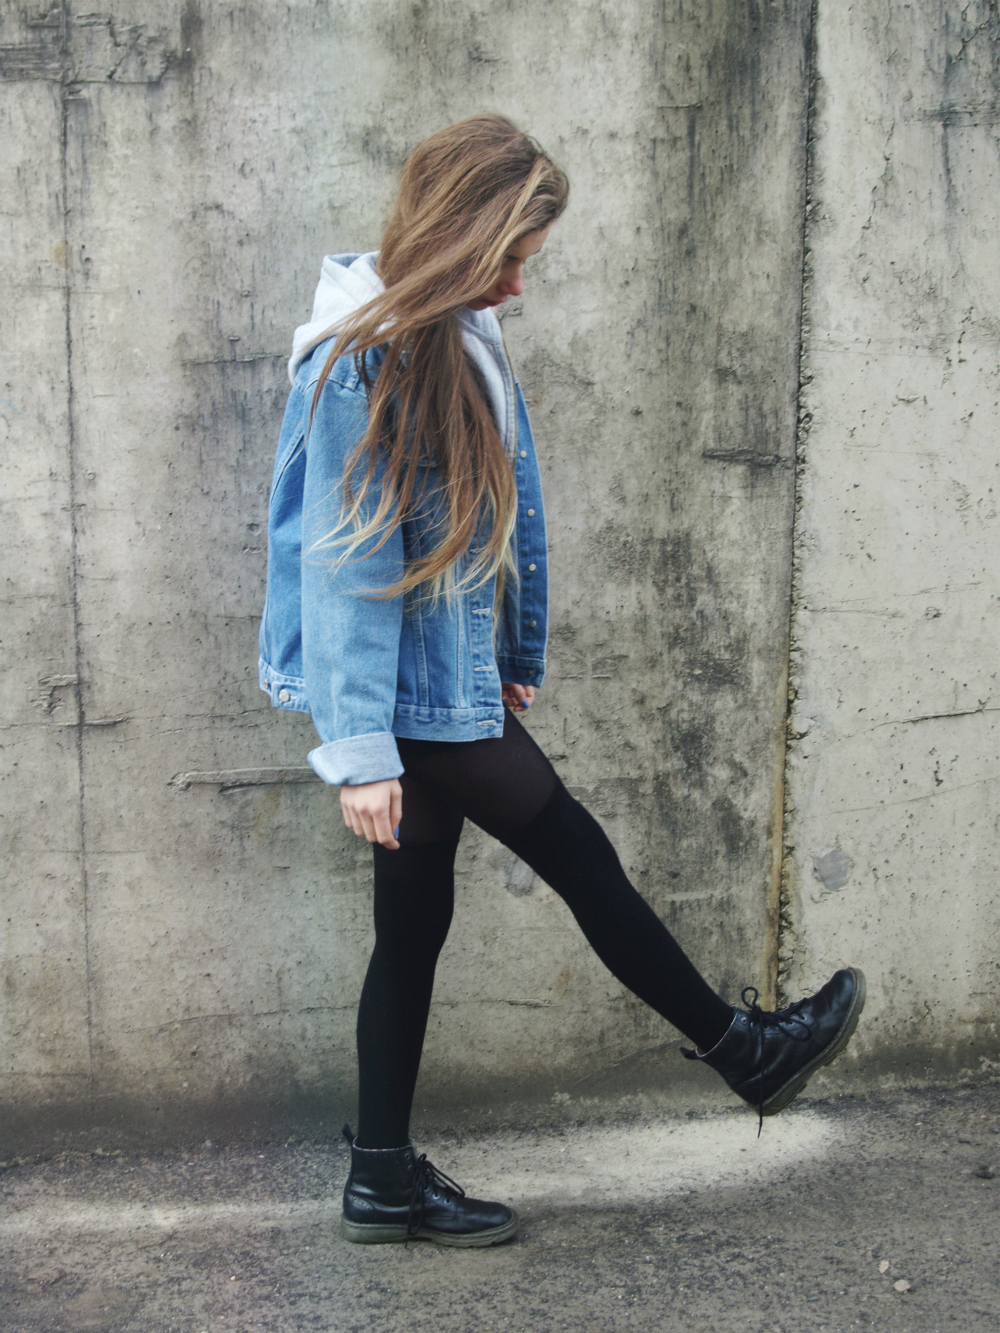 jean shirt outfits tumblr